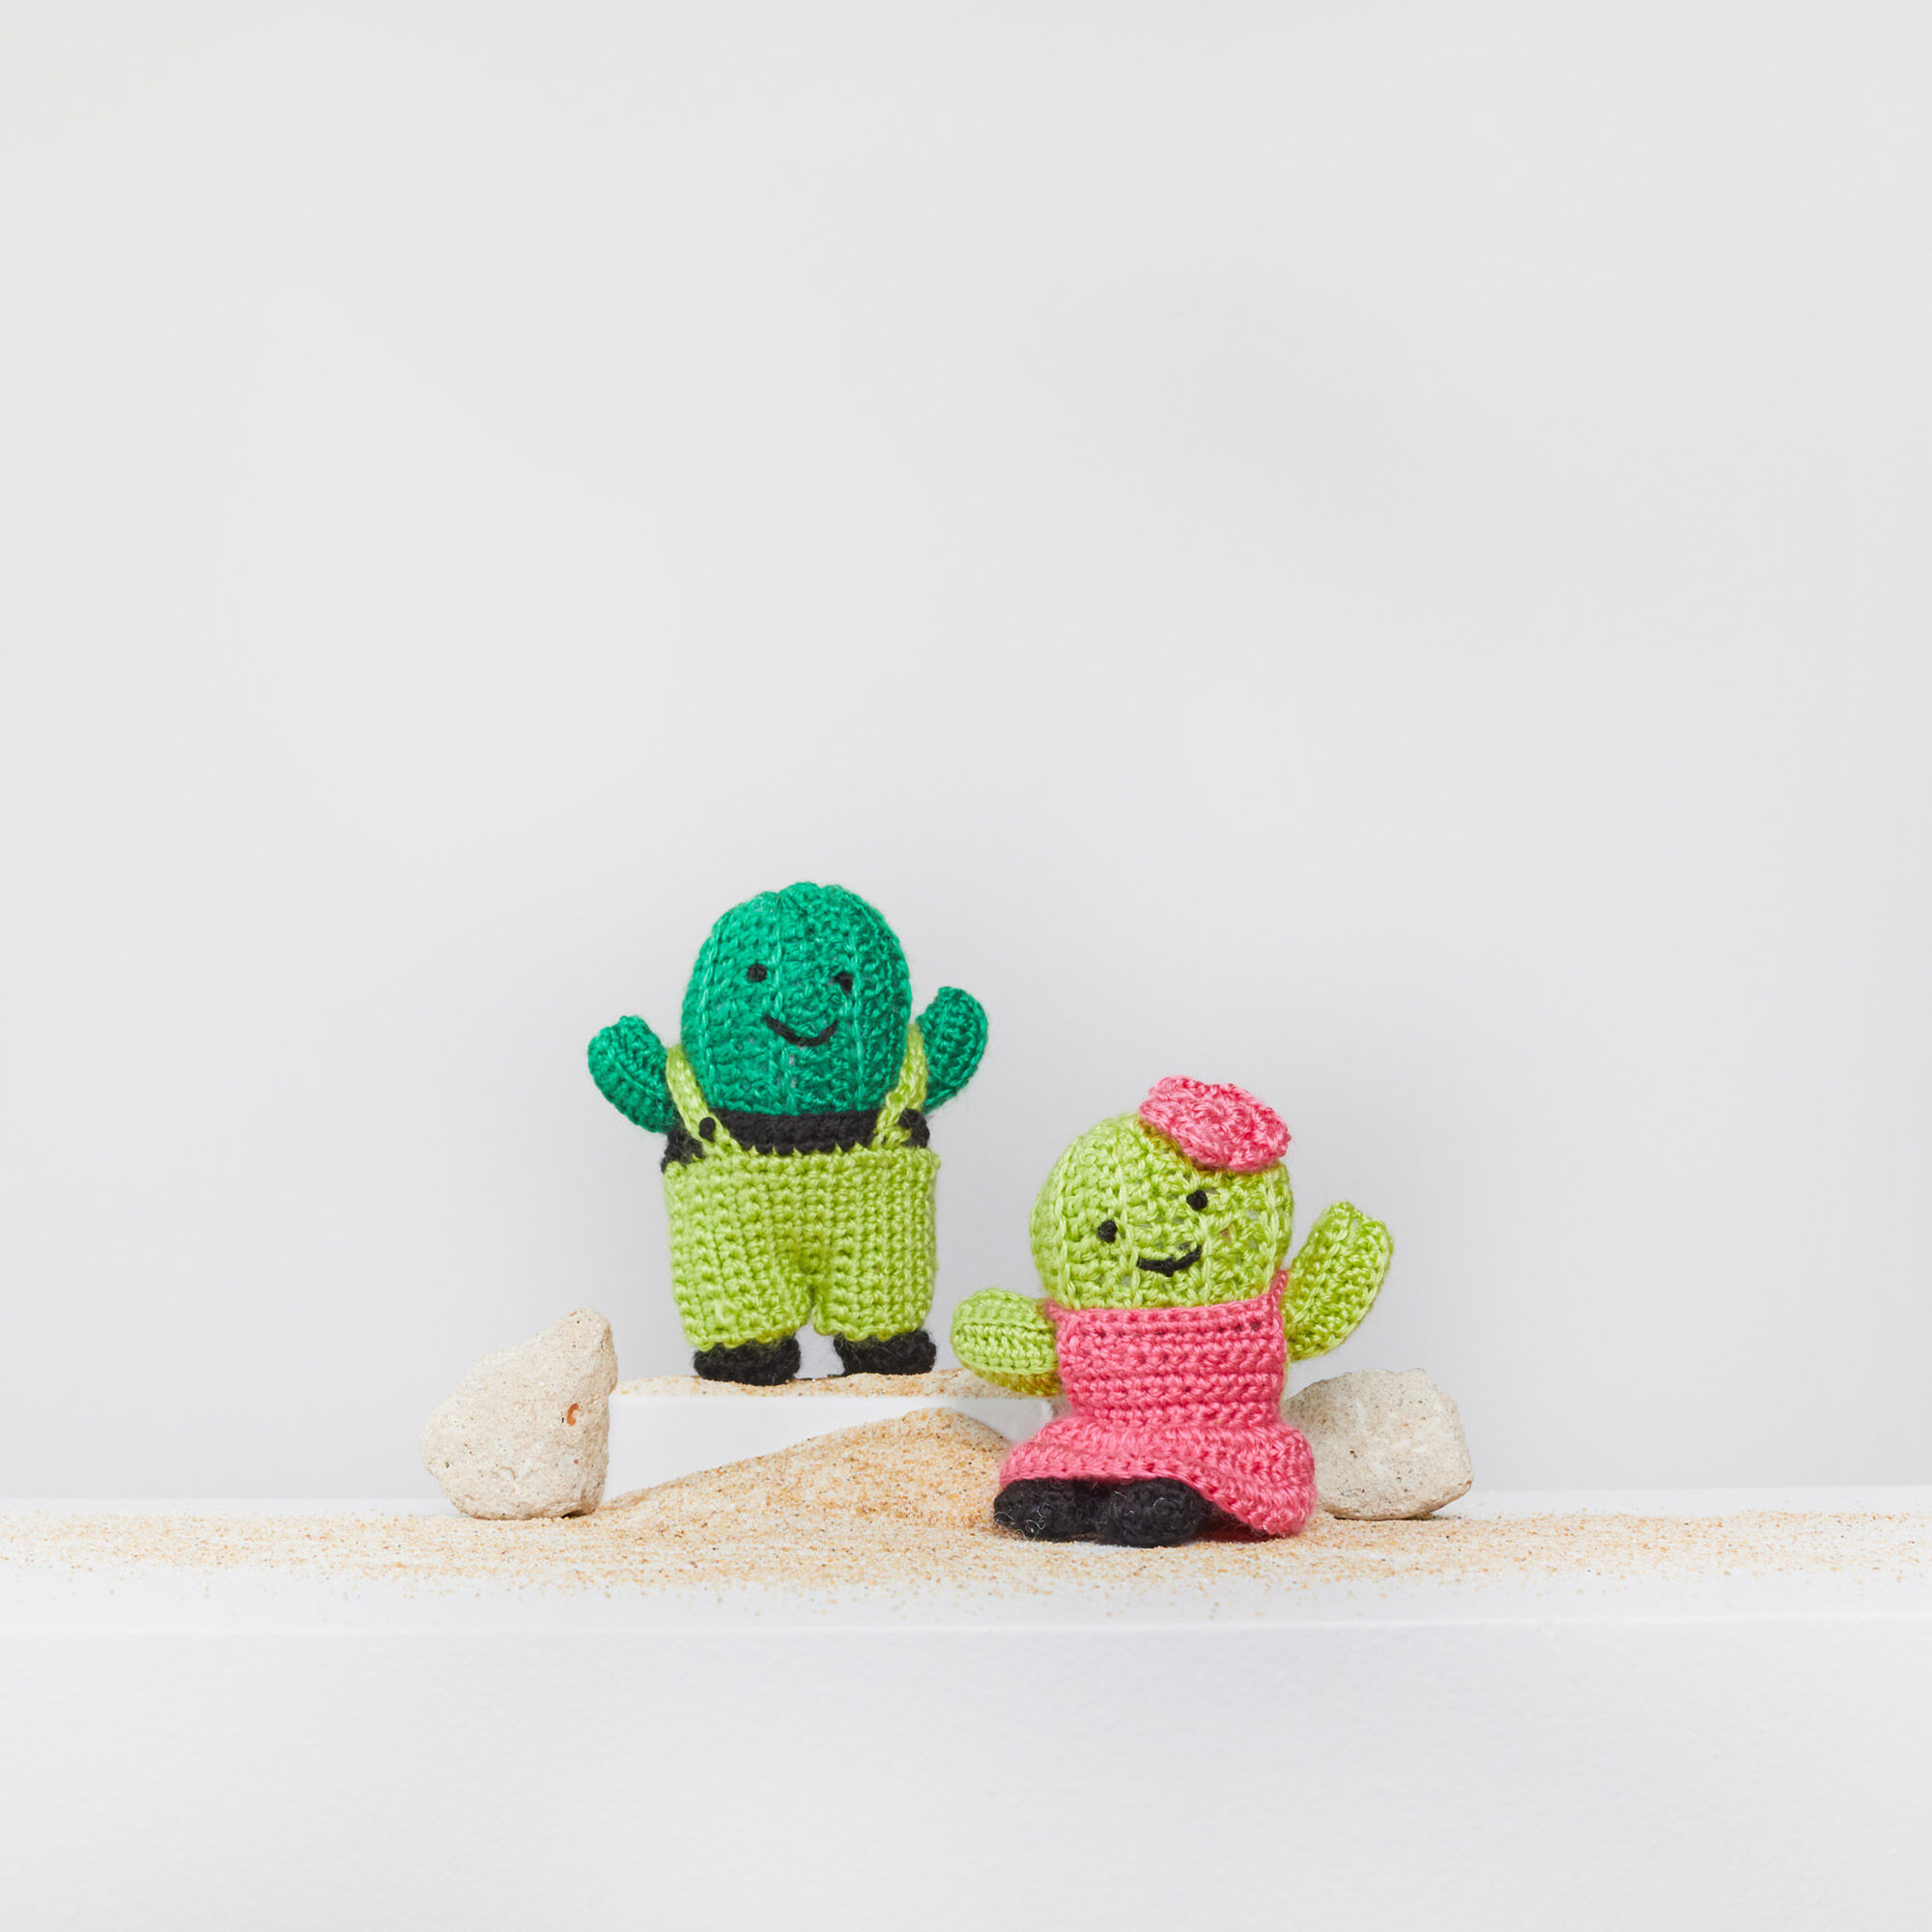 diy amigurumi crochet cactus step by step tutorial | UsefulDIY.com | 2000x2000